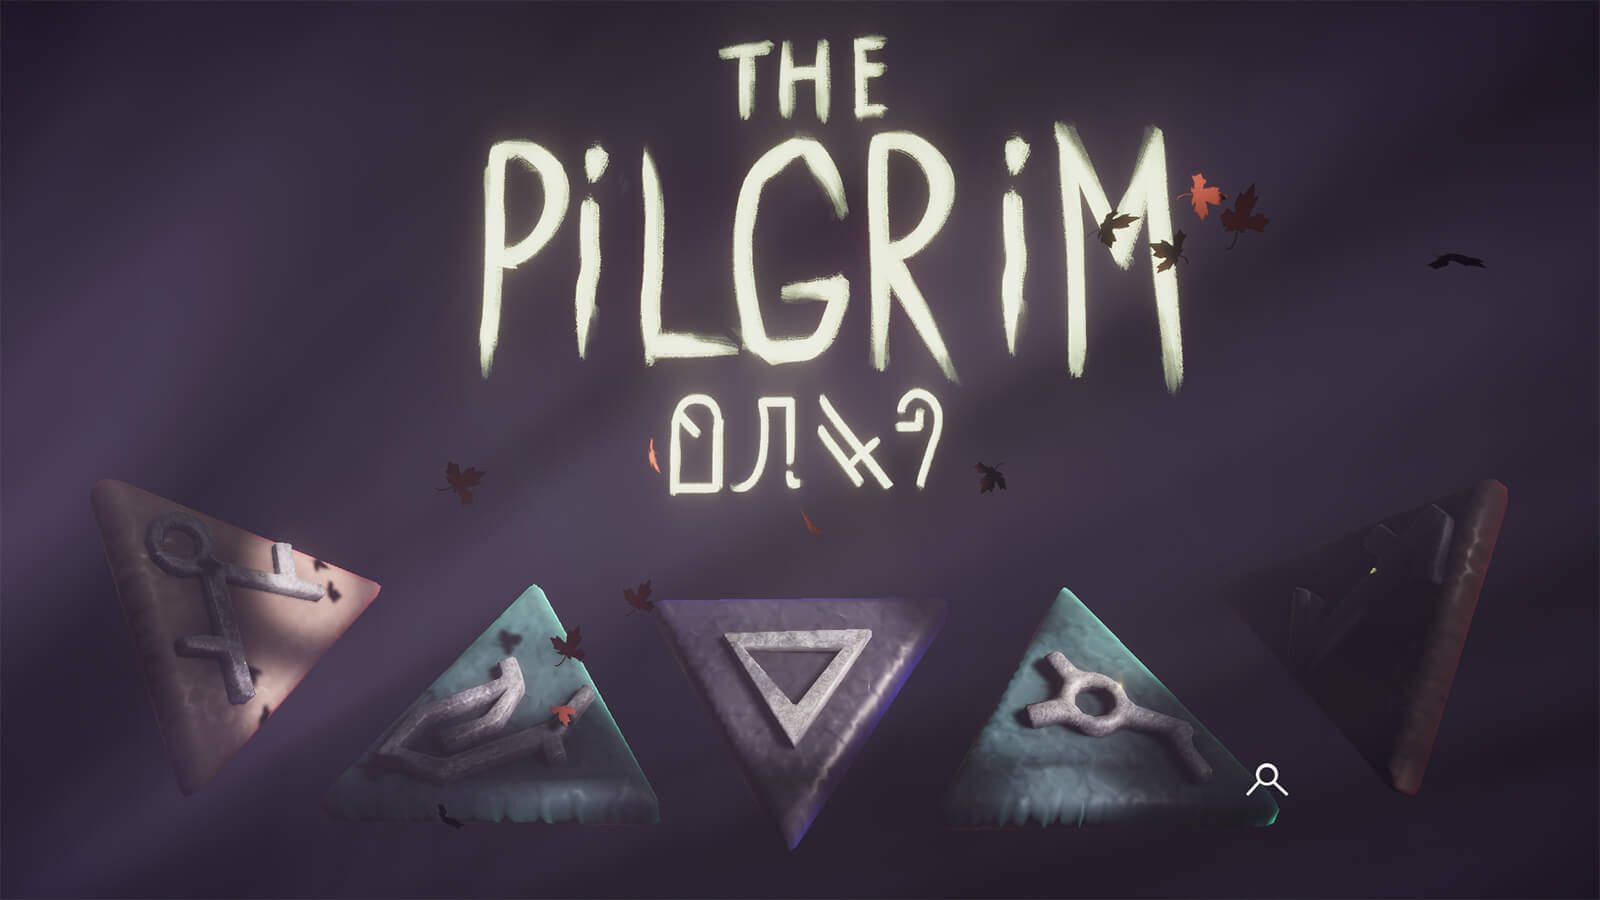 The menu screen for The Pilgrim, featuring many of the game's runic puzzle symbols embossed on colored triangles.